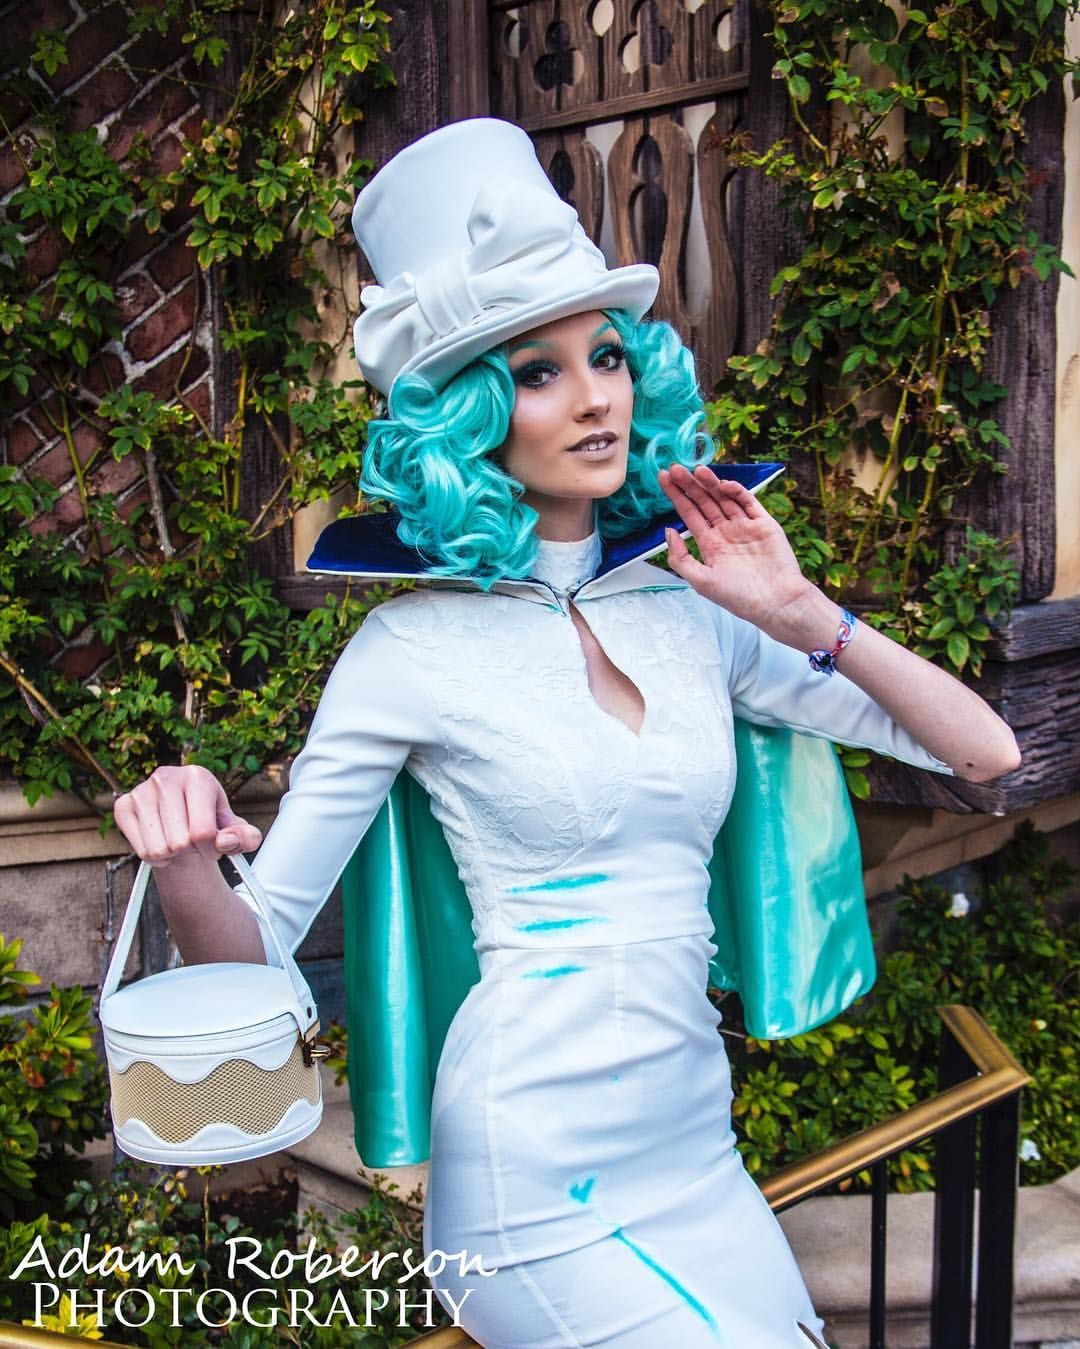 Throwback To Dapper Day Thank You Adam Roberson Photography For This Photo Dapperday Hatboxghost Dis Disney Dapper Day Dapper Day Dapper Day Outfits